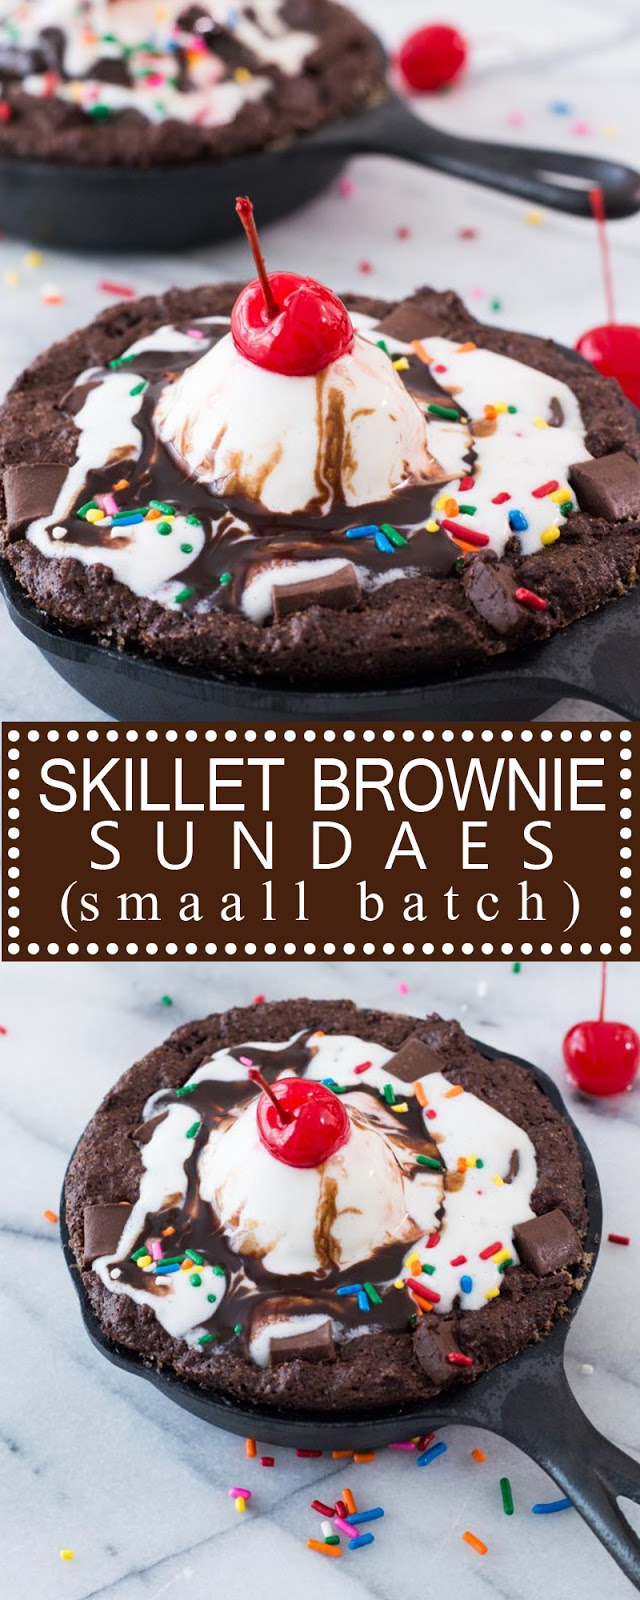 SKILLET BROWNIE SUNDAES